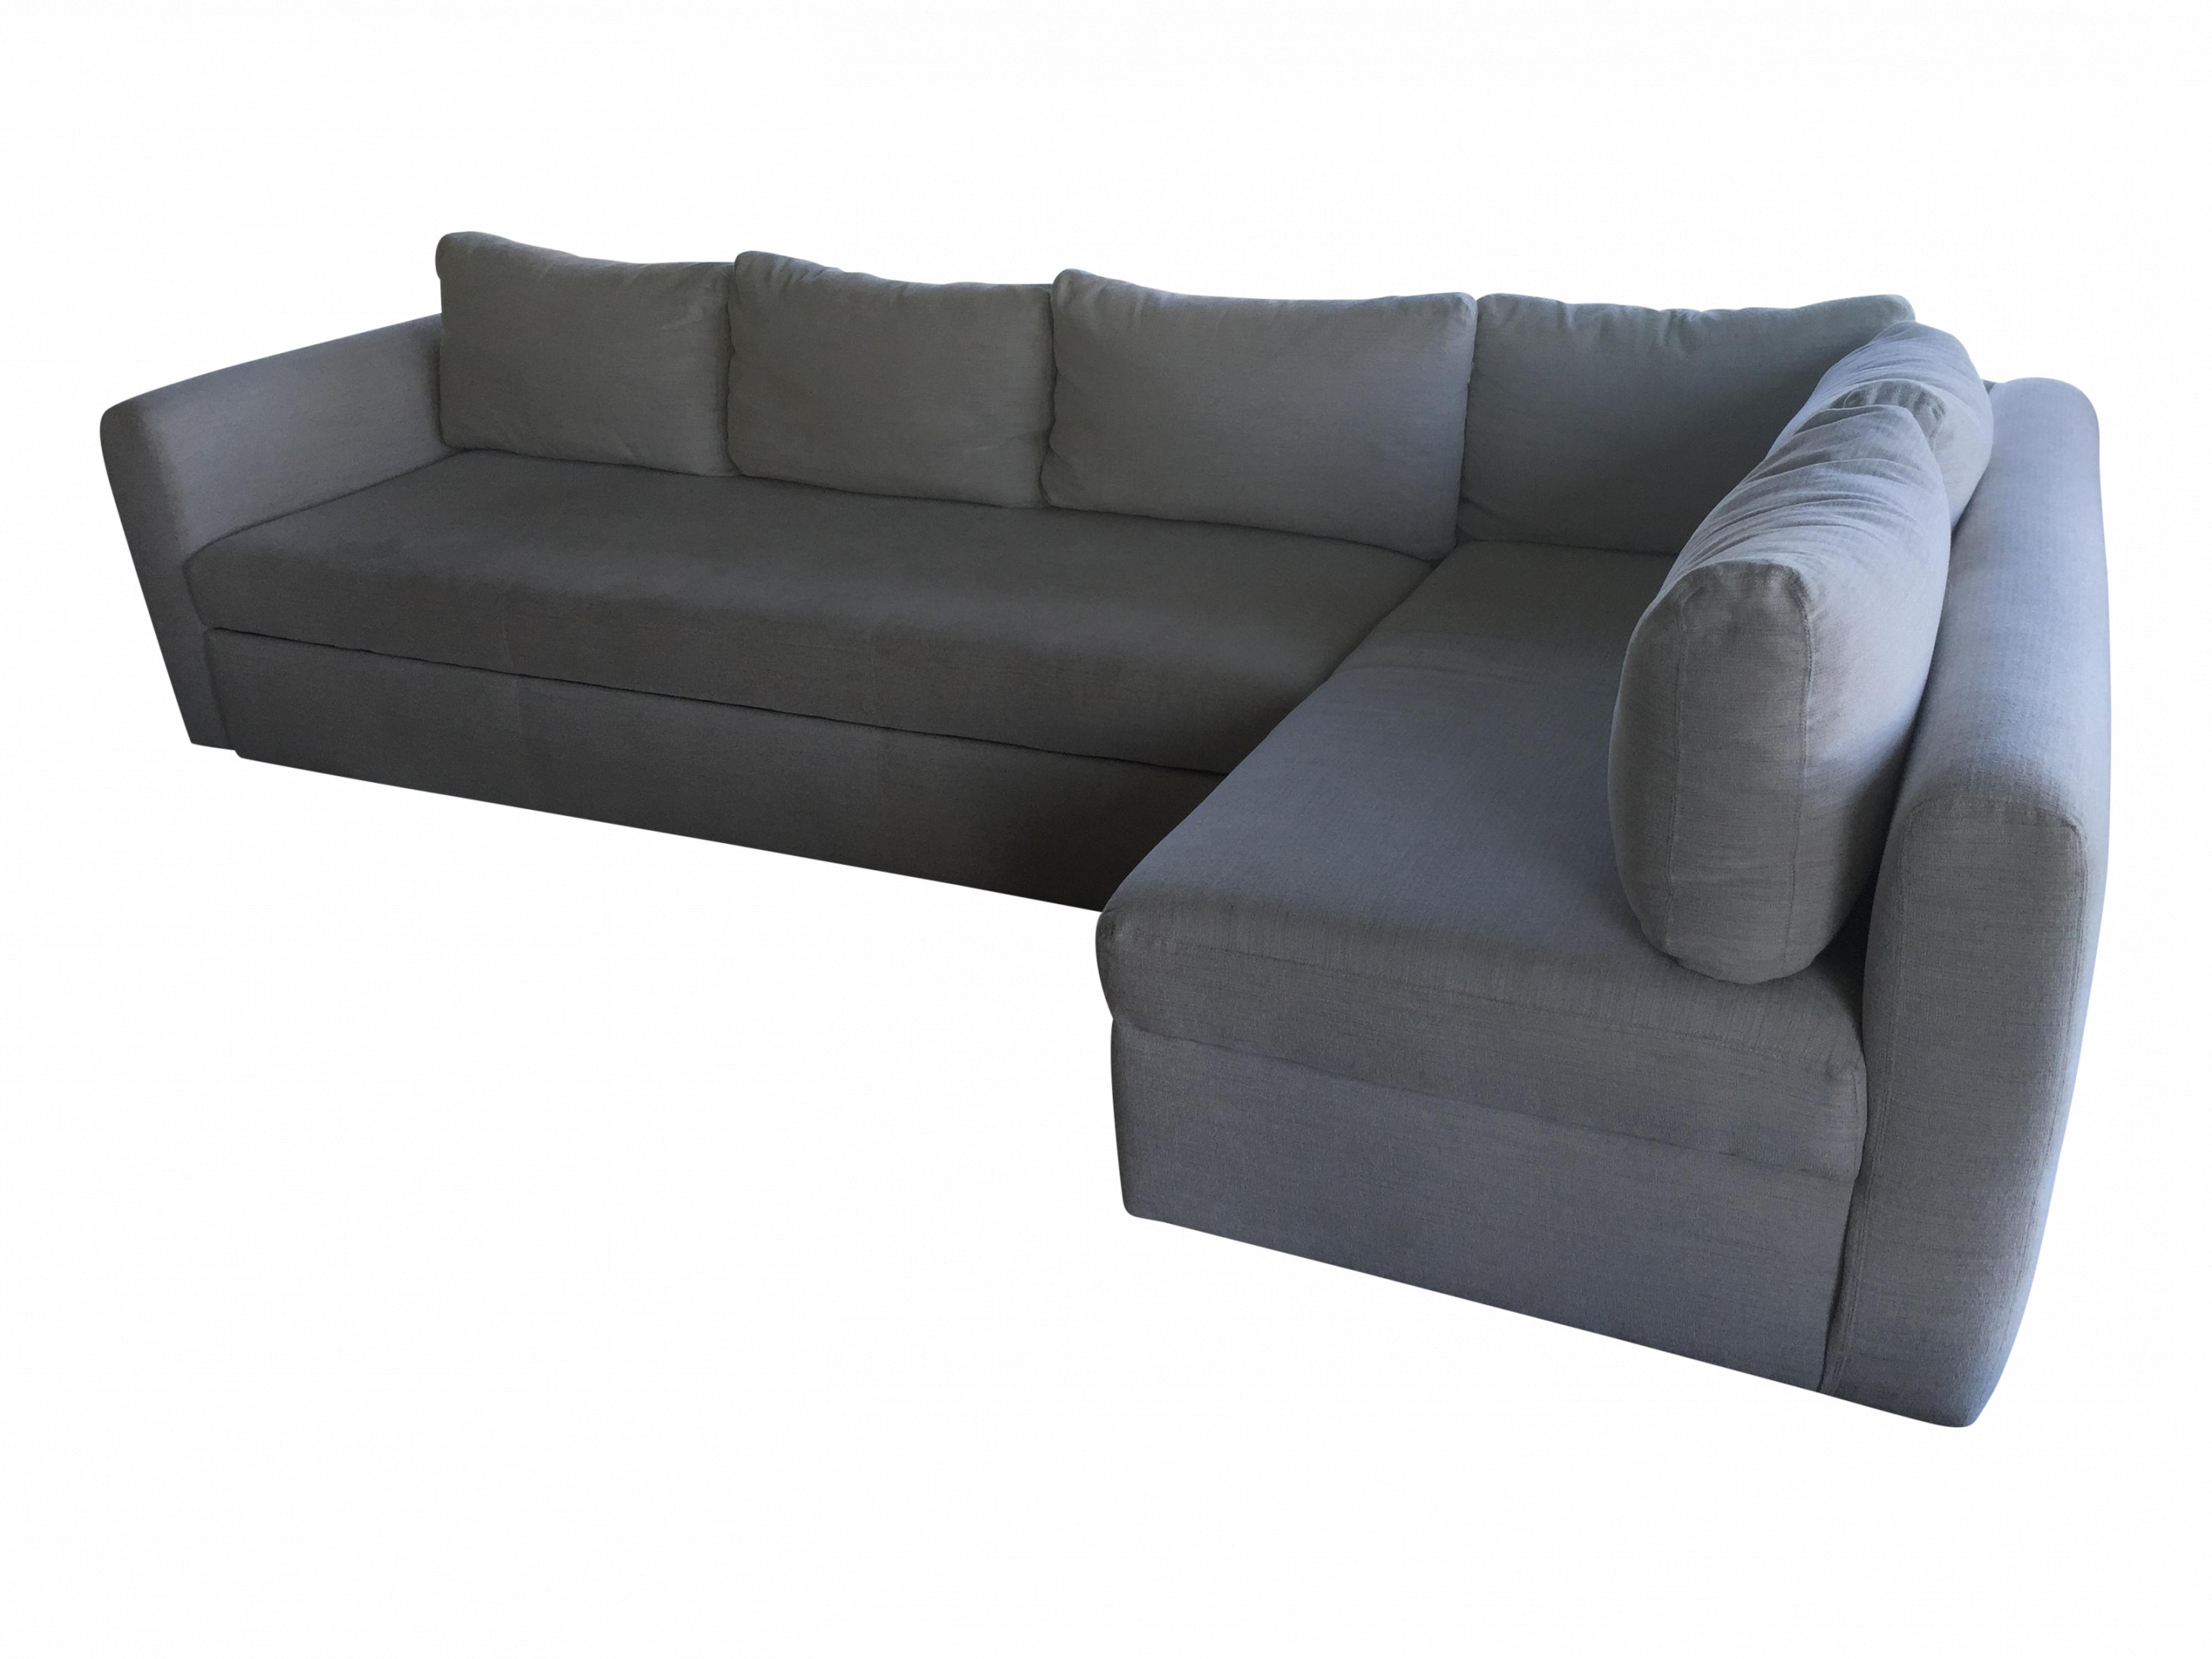 Room And Board Sectional Sofas With Regard To Famous Room And Board Sectional Sofa Sleeper Sale Review Eden Stock (View 10 of 15)